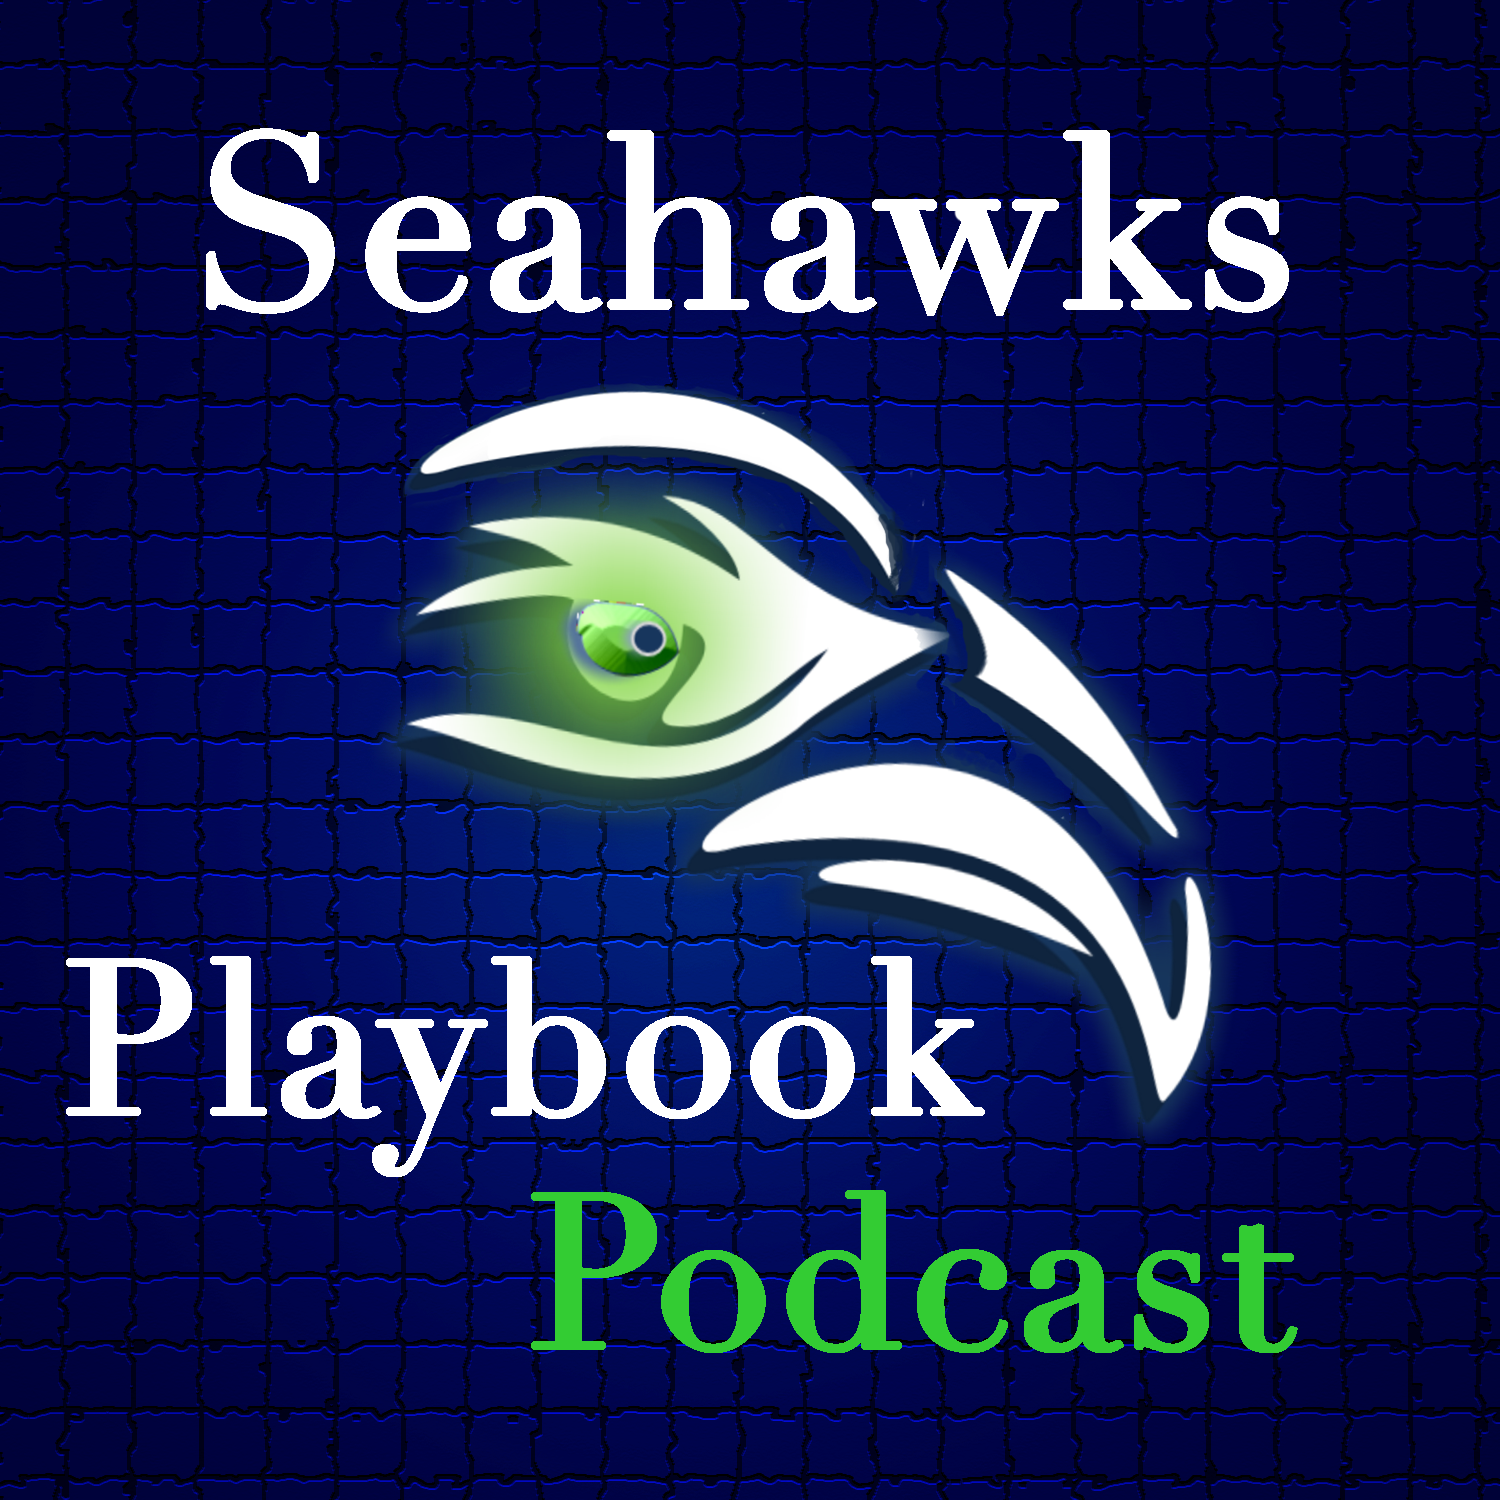 Seahawks Playbook – A Seattle Seahawks Podcast